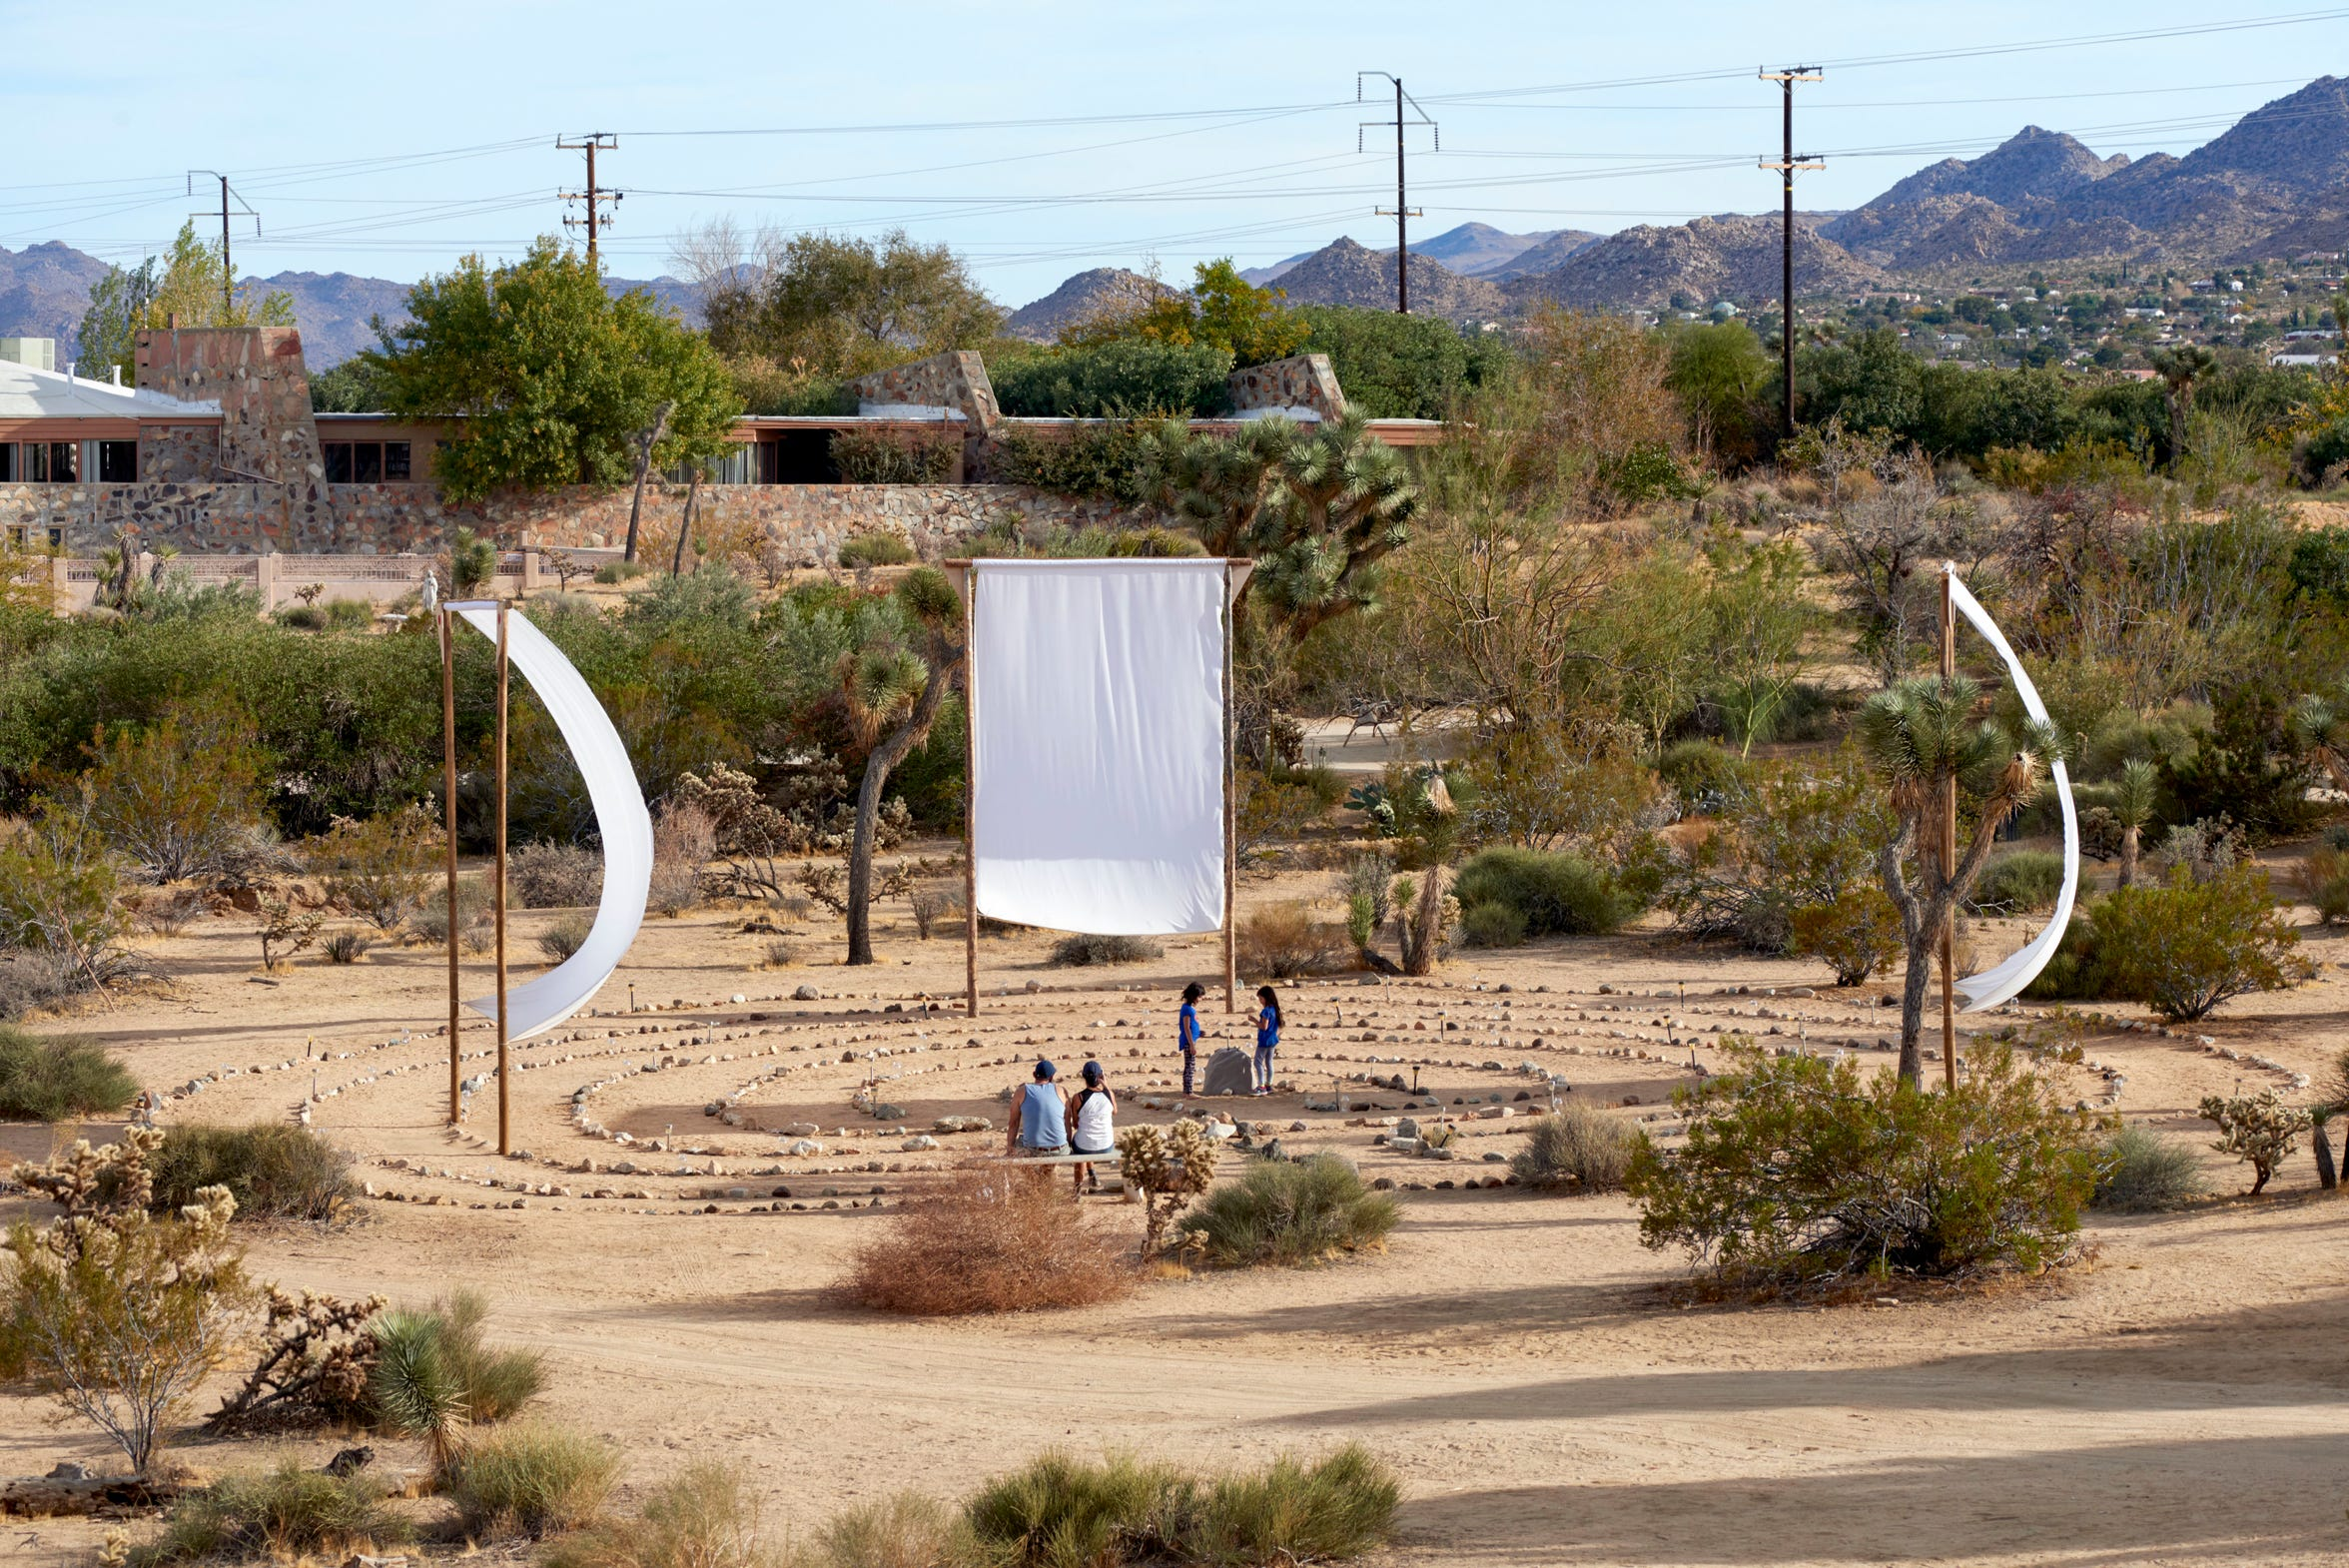 The Joshua Tree Retreat Center, or The Institute of Mentalphysics, in Joshua Tree